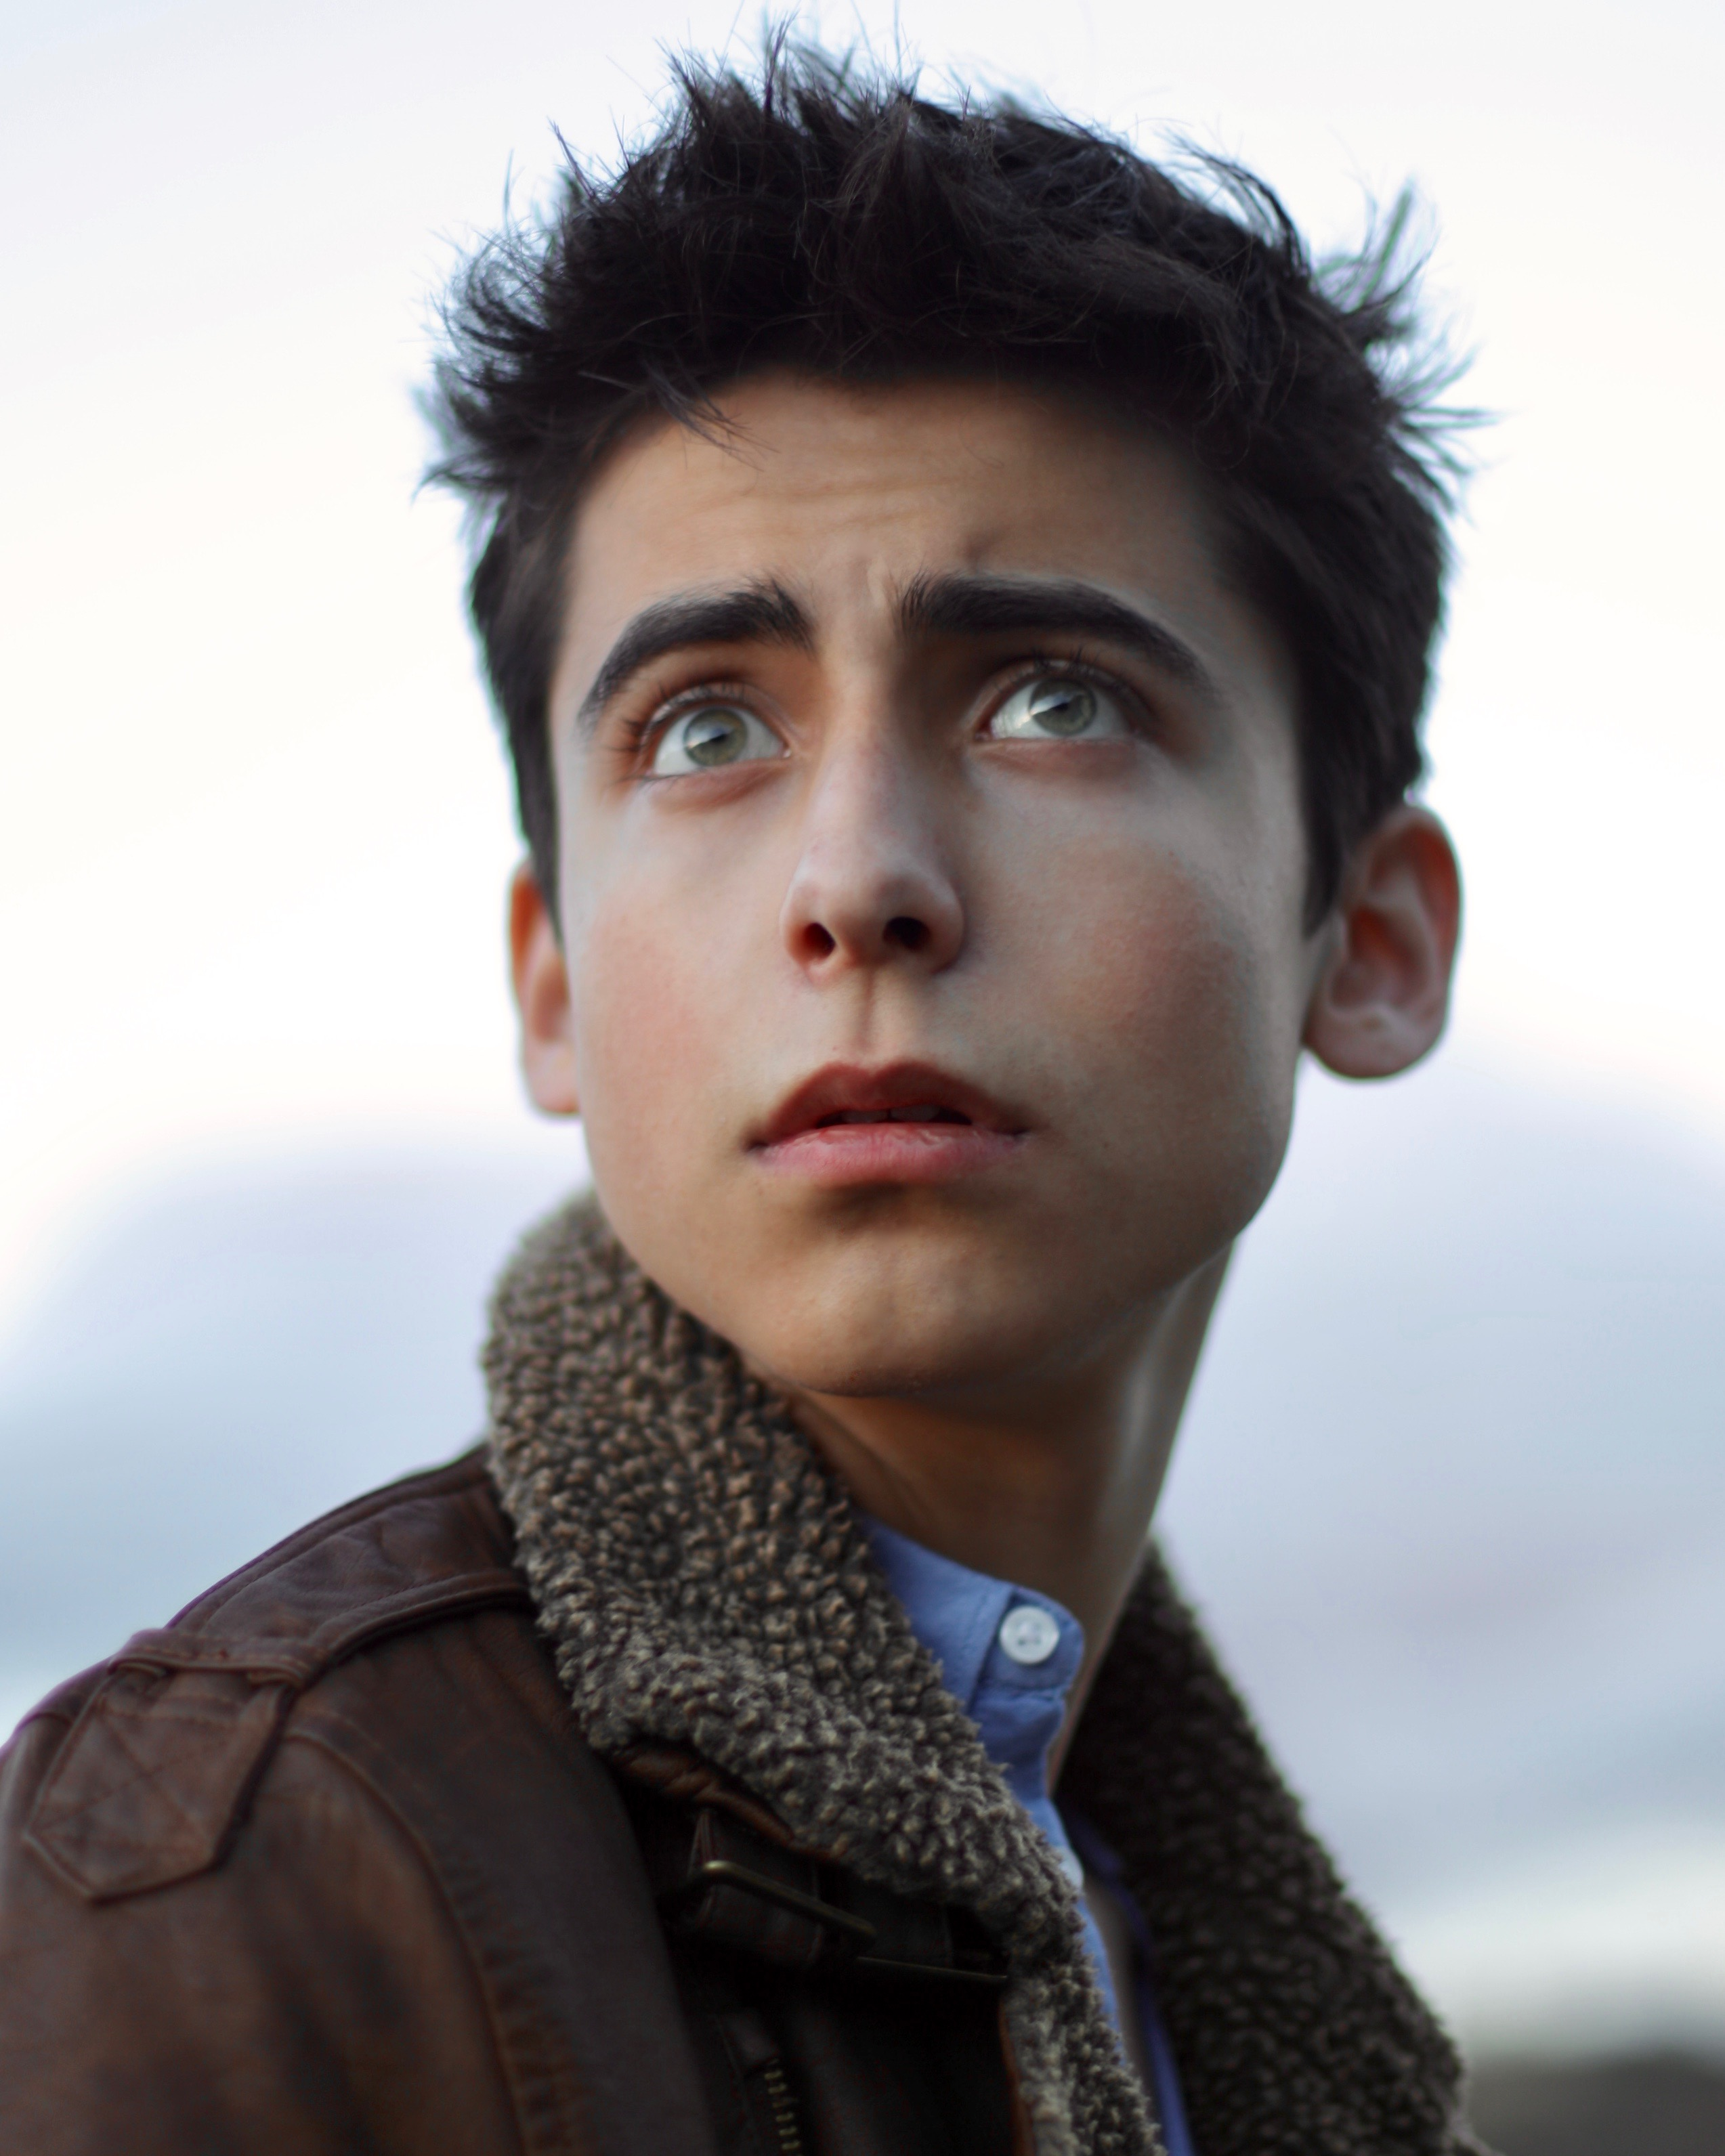 Aidan Gallagher